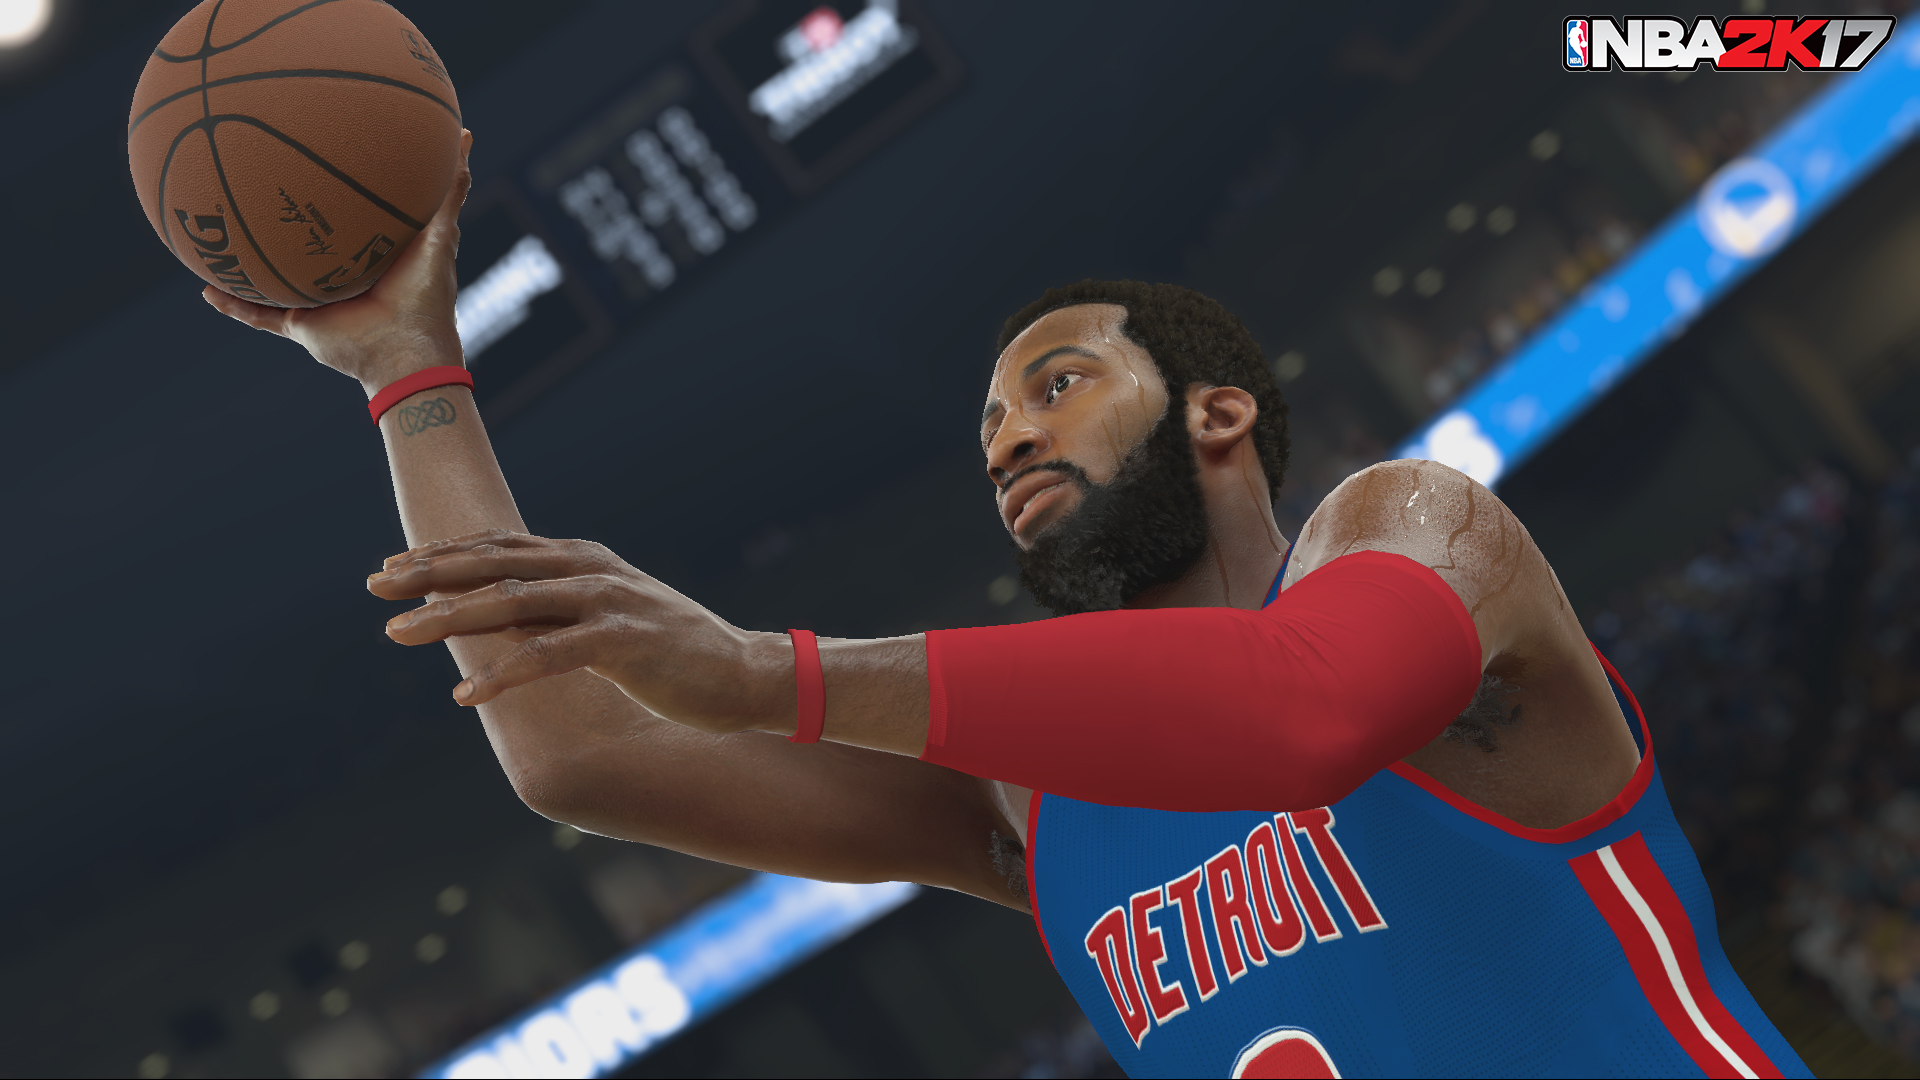 nba 2k15 pc game free download full version highly compressed